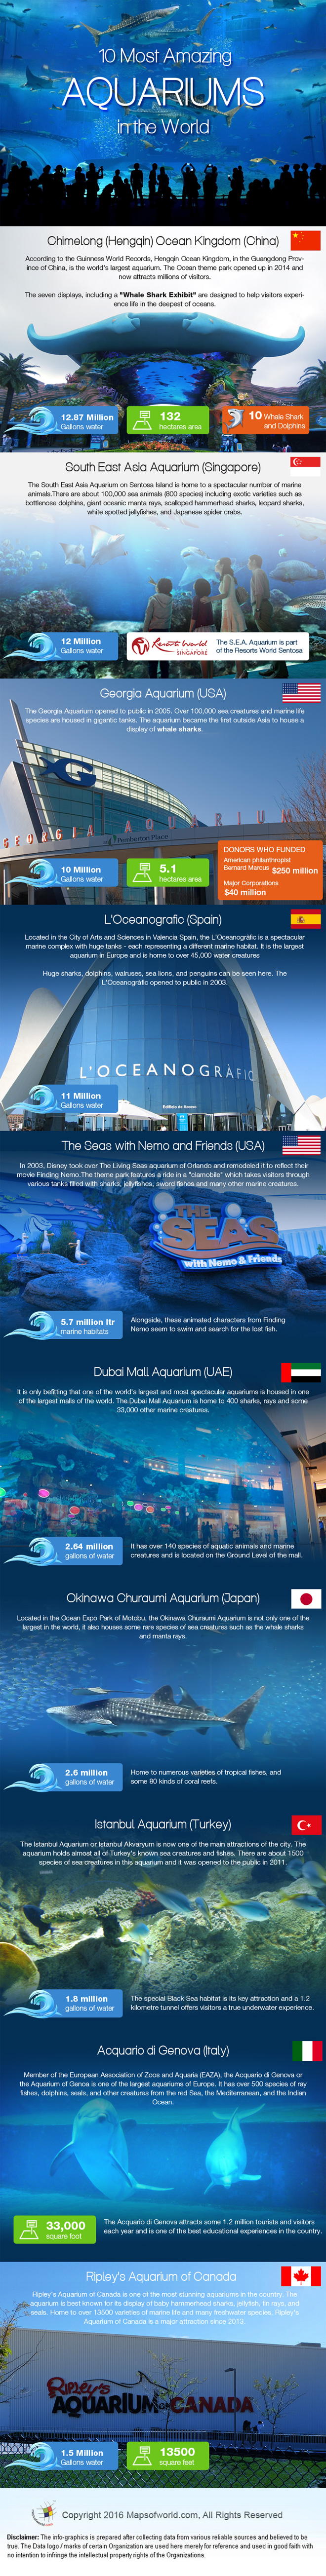 Infographic on 10 Most Amazing Aquariums in the World